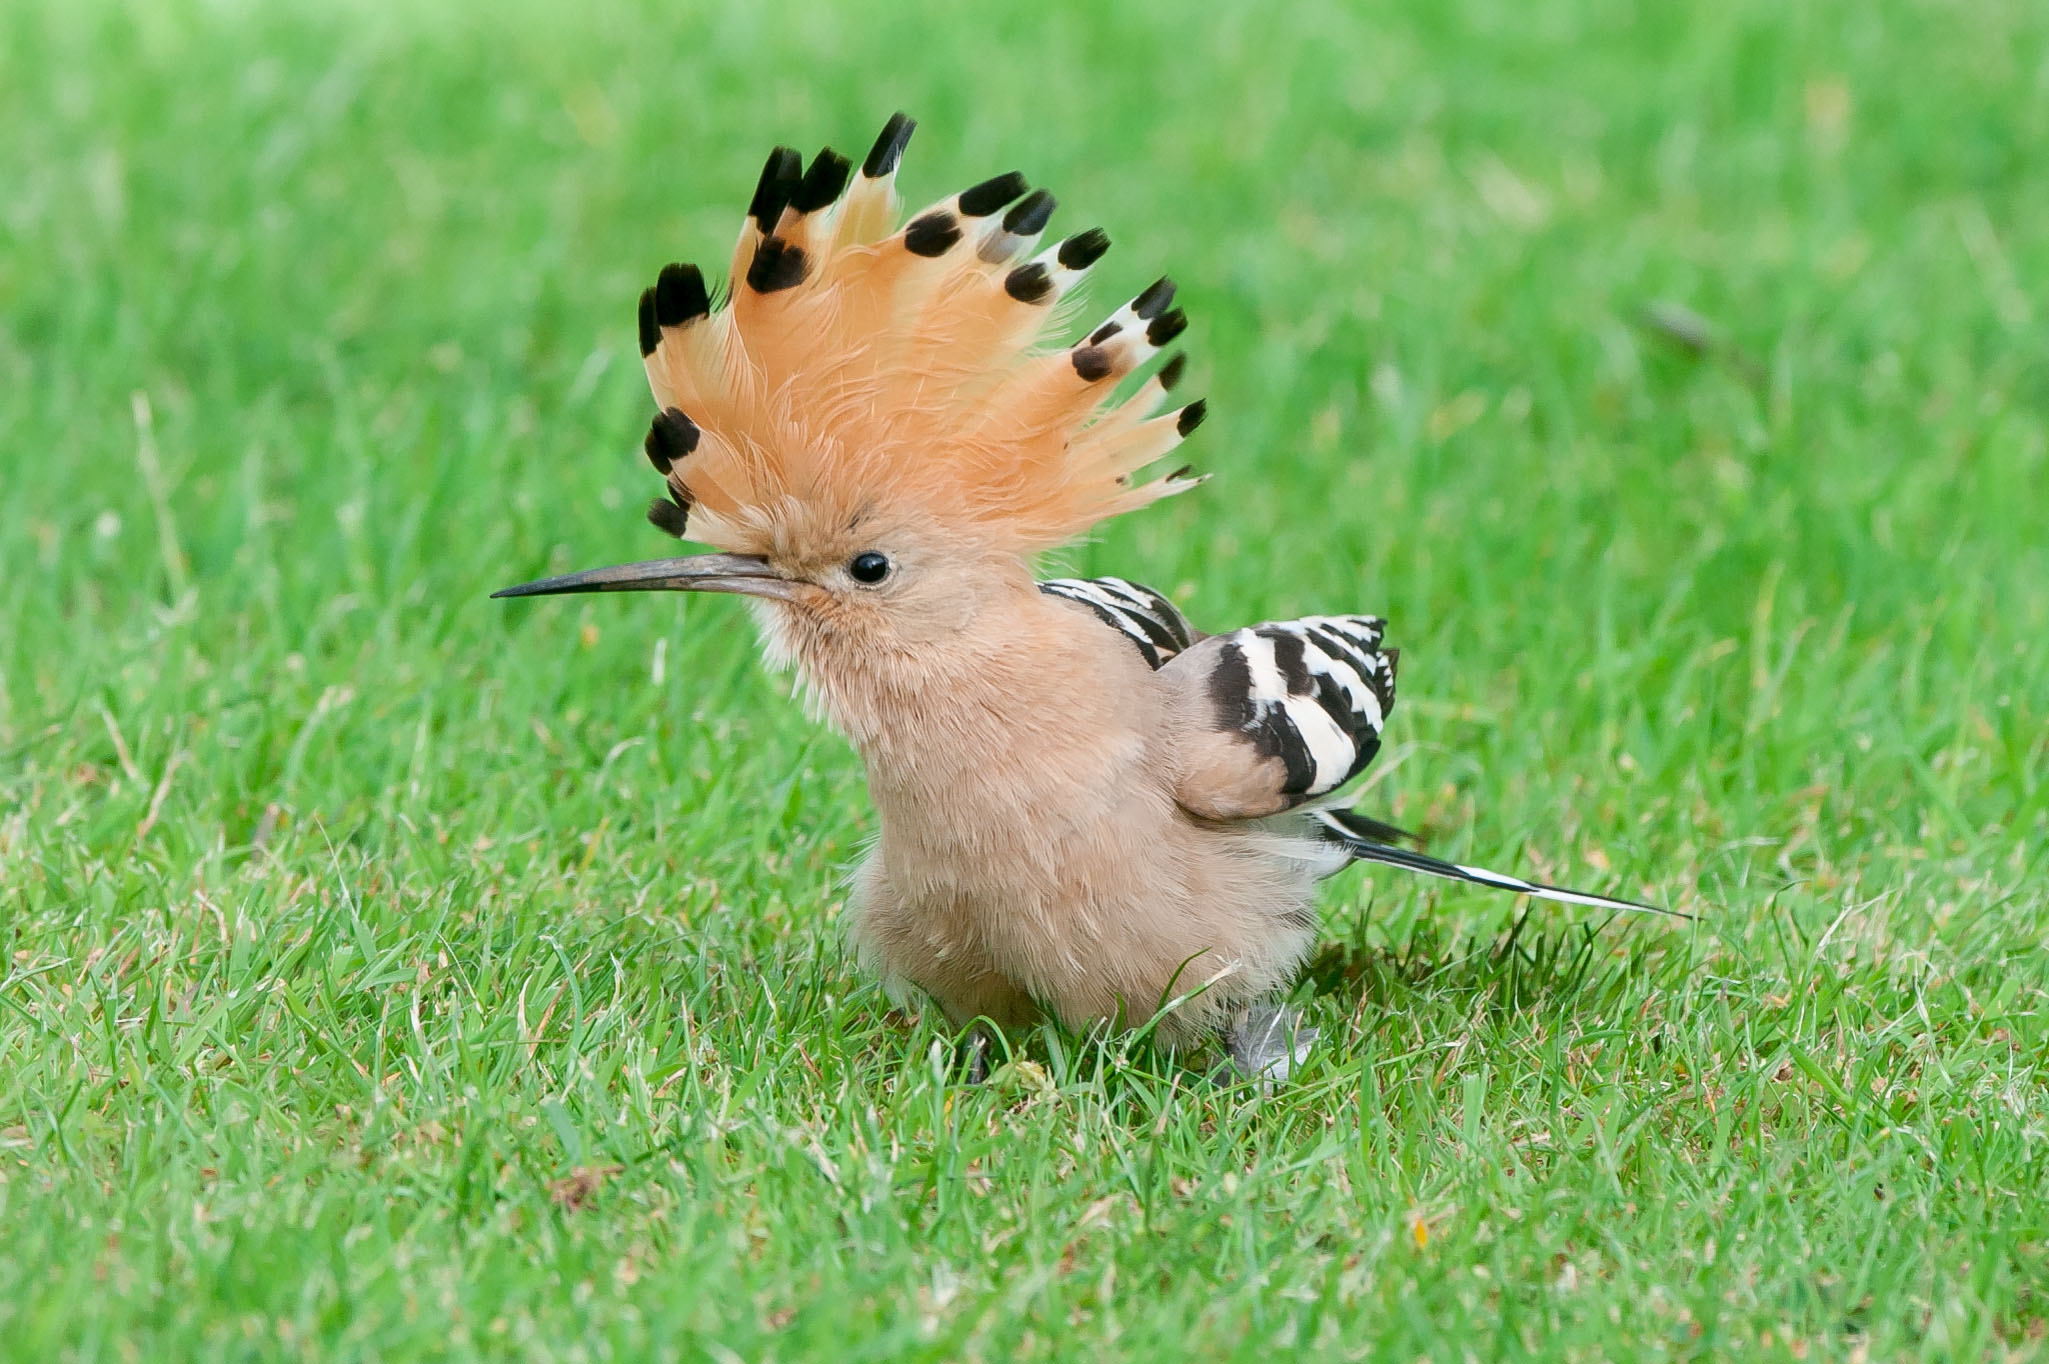 This hoopoe showed very well over a weekend in May near Beverley at a private garden.It was very tame and came within 15 feet of the crowd. I went to see it on the Friday it was found and the next day-one of the highlights of the year.